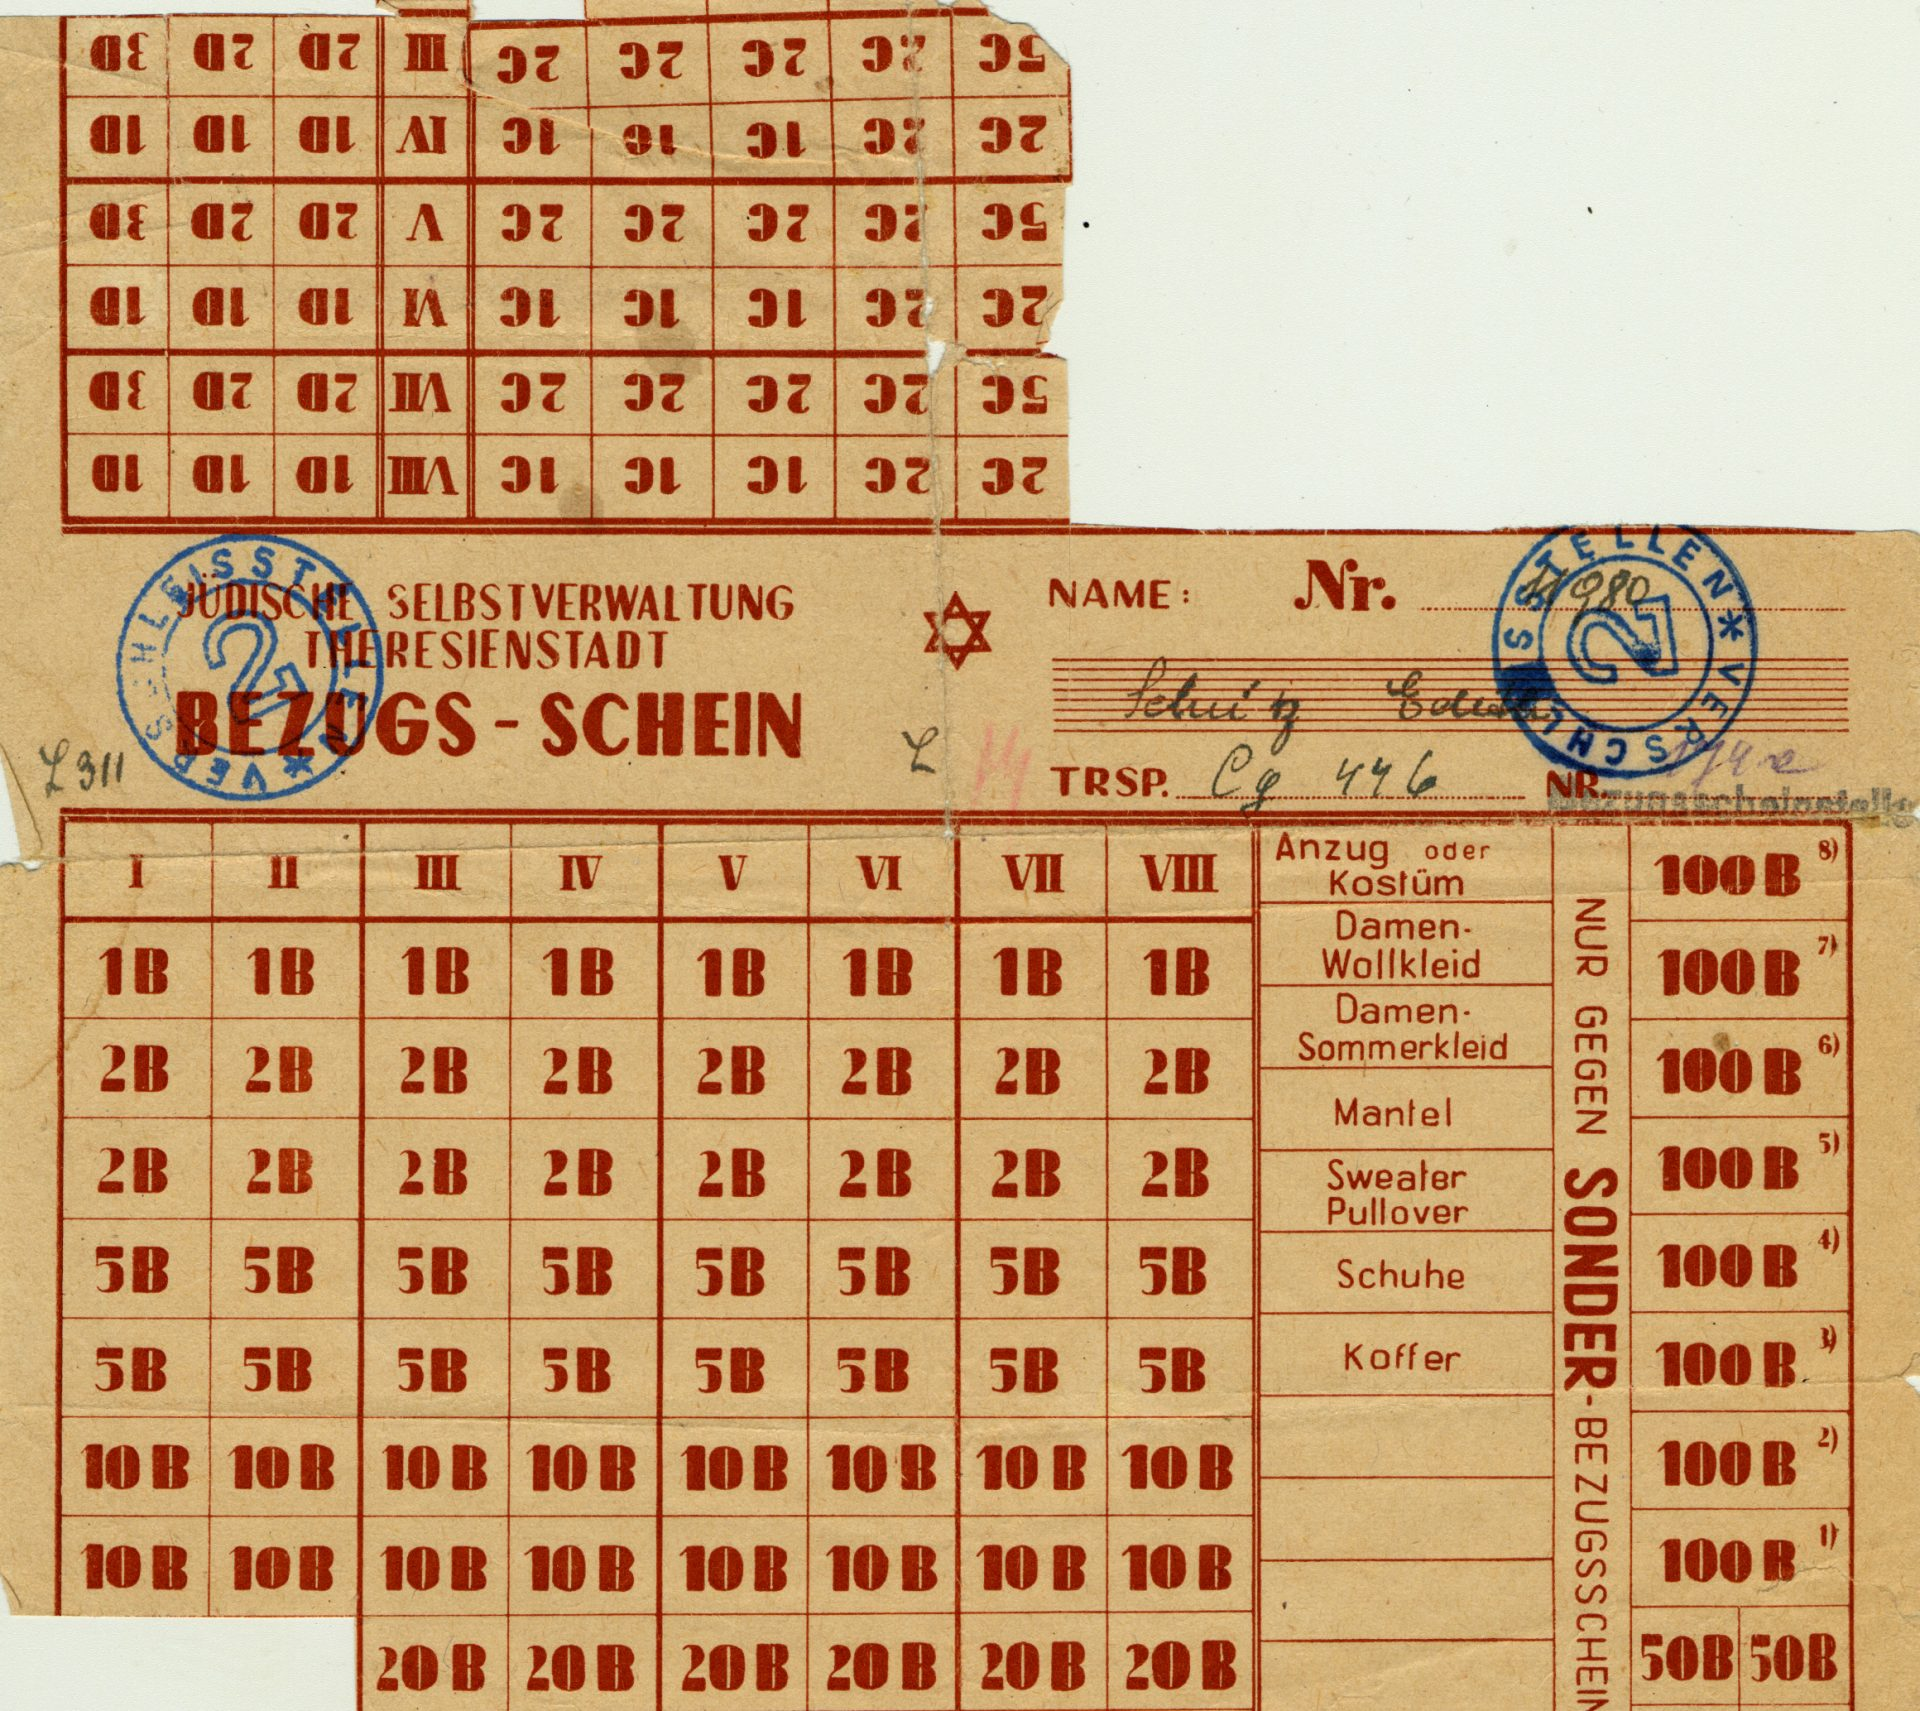 This ration tokens sheet belonged to Emilie Schulzova and was used in the Theresienstadt ghetto. The tokens allowed inhabitants to buy products that were available in limited quantities.